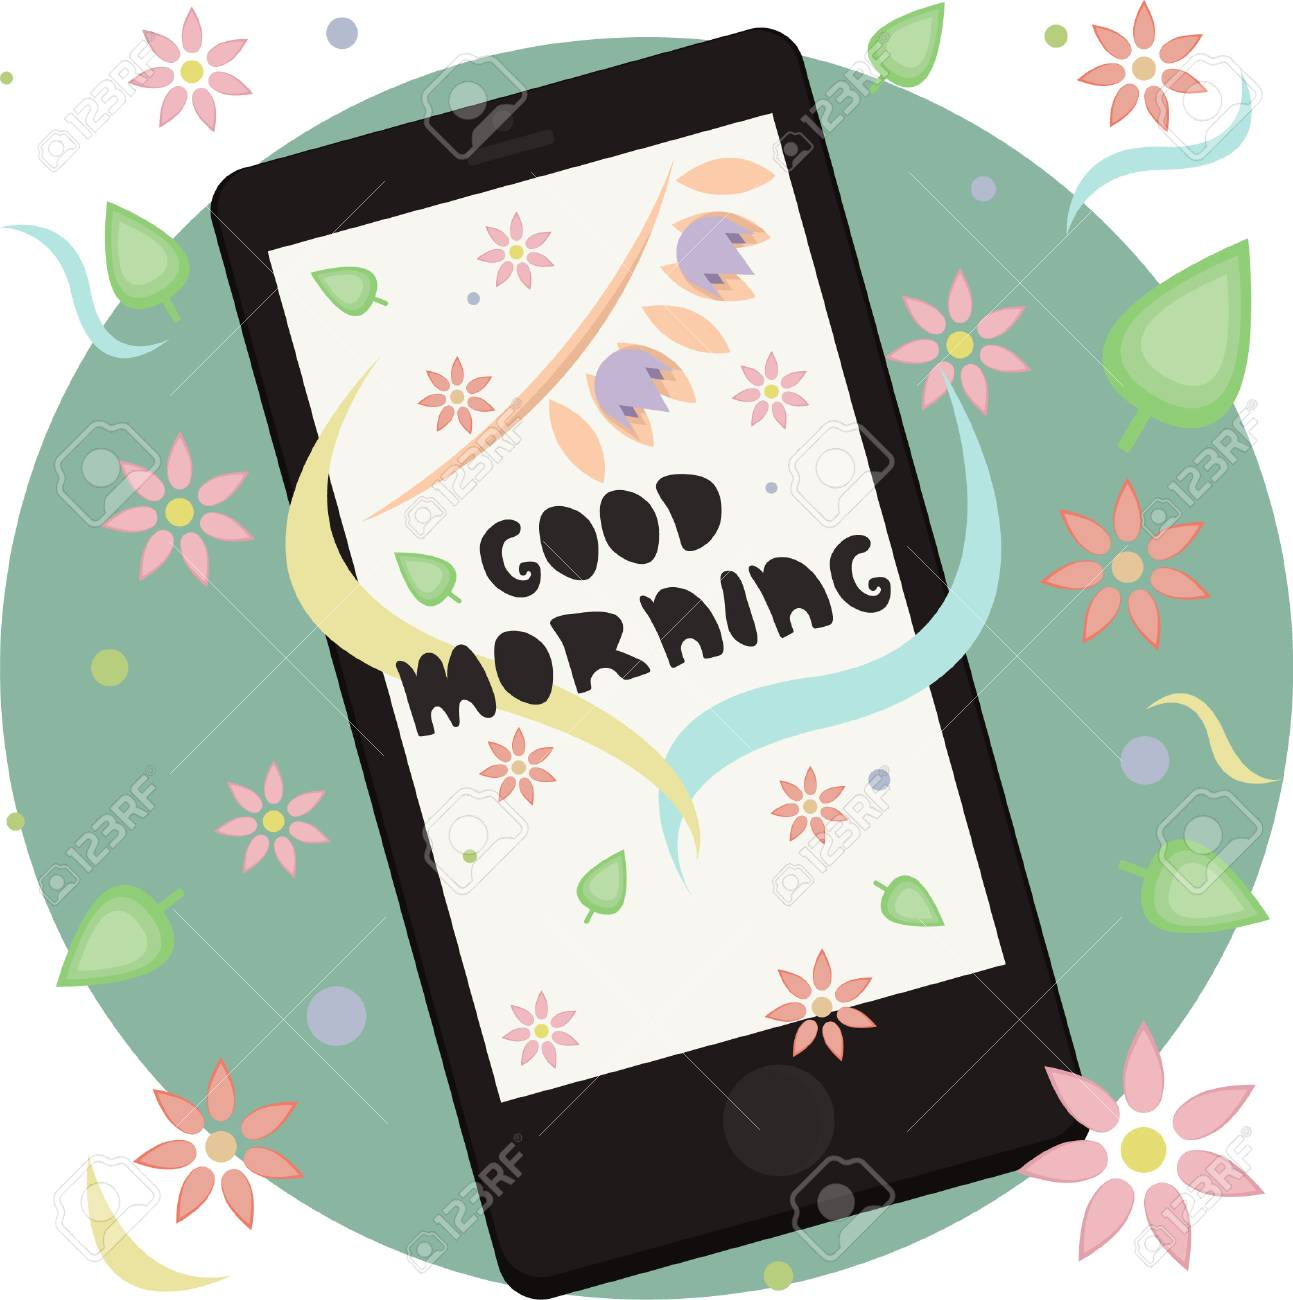 Morning Greeting On The Phone Vector Illustration Royalty Free